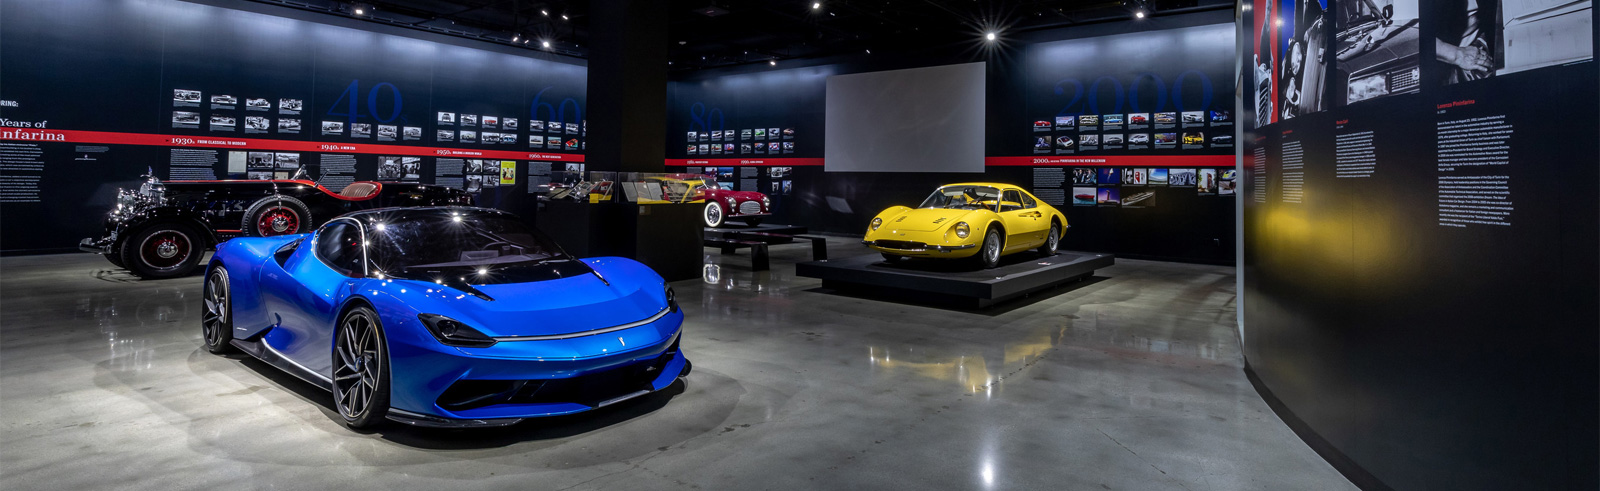 The all-electric Pininfarina Battista Hyper GT exhibited at the Petersen Museum